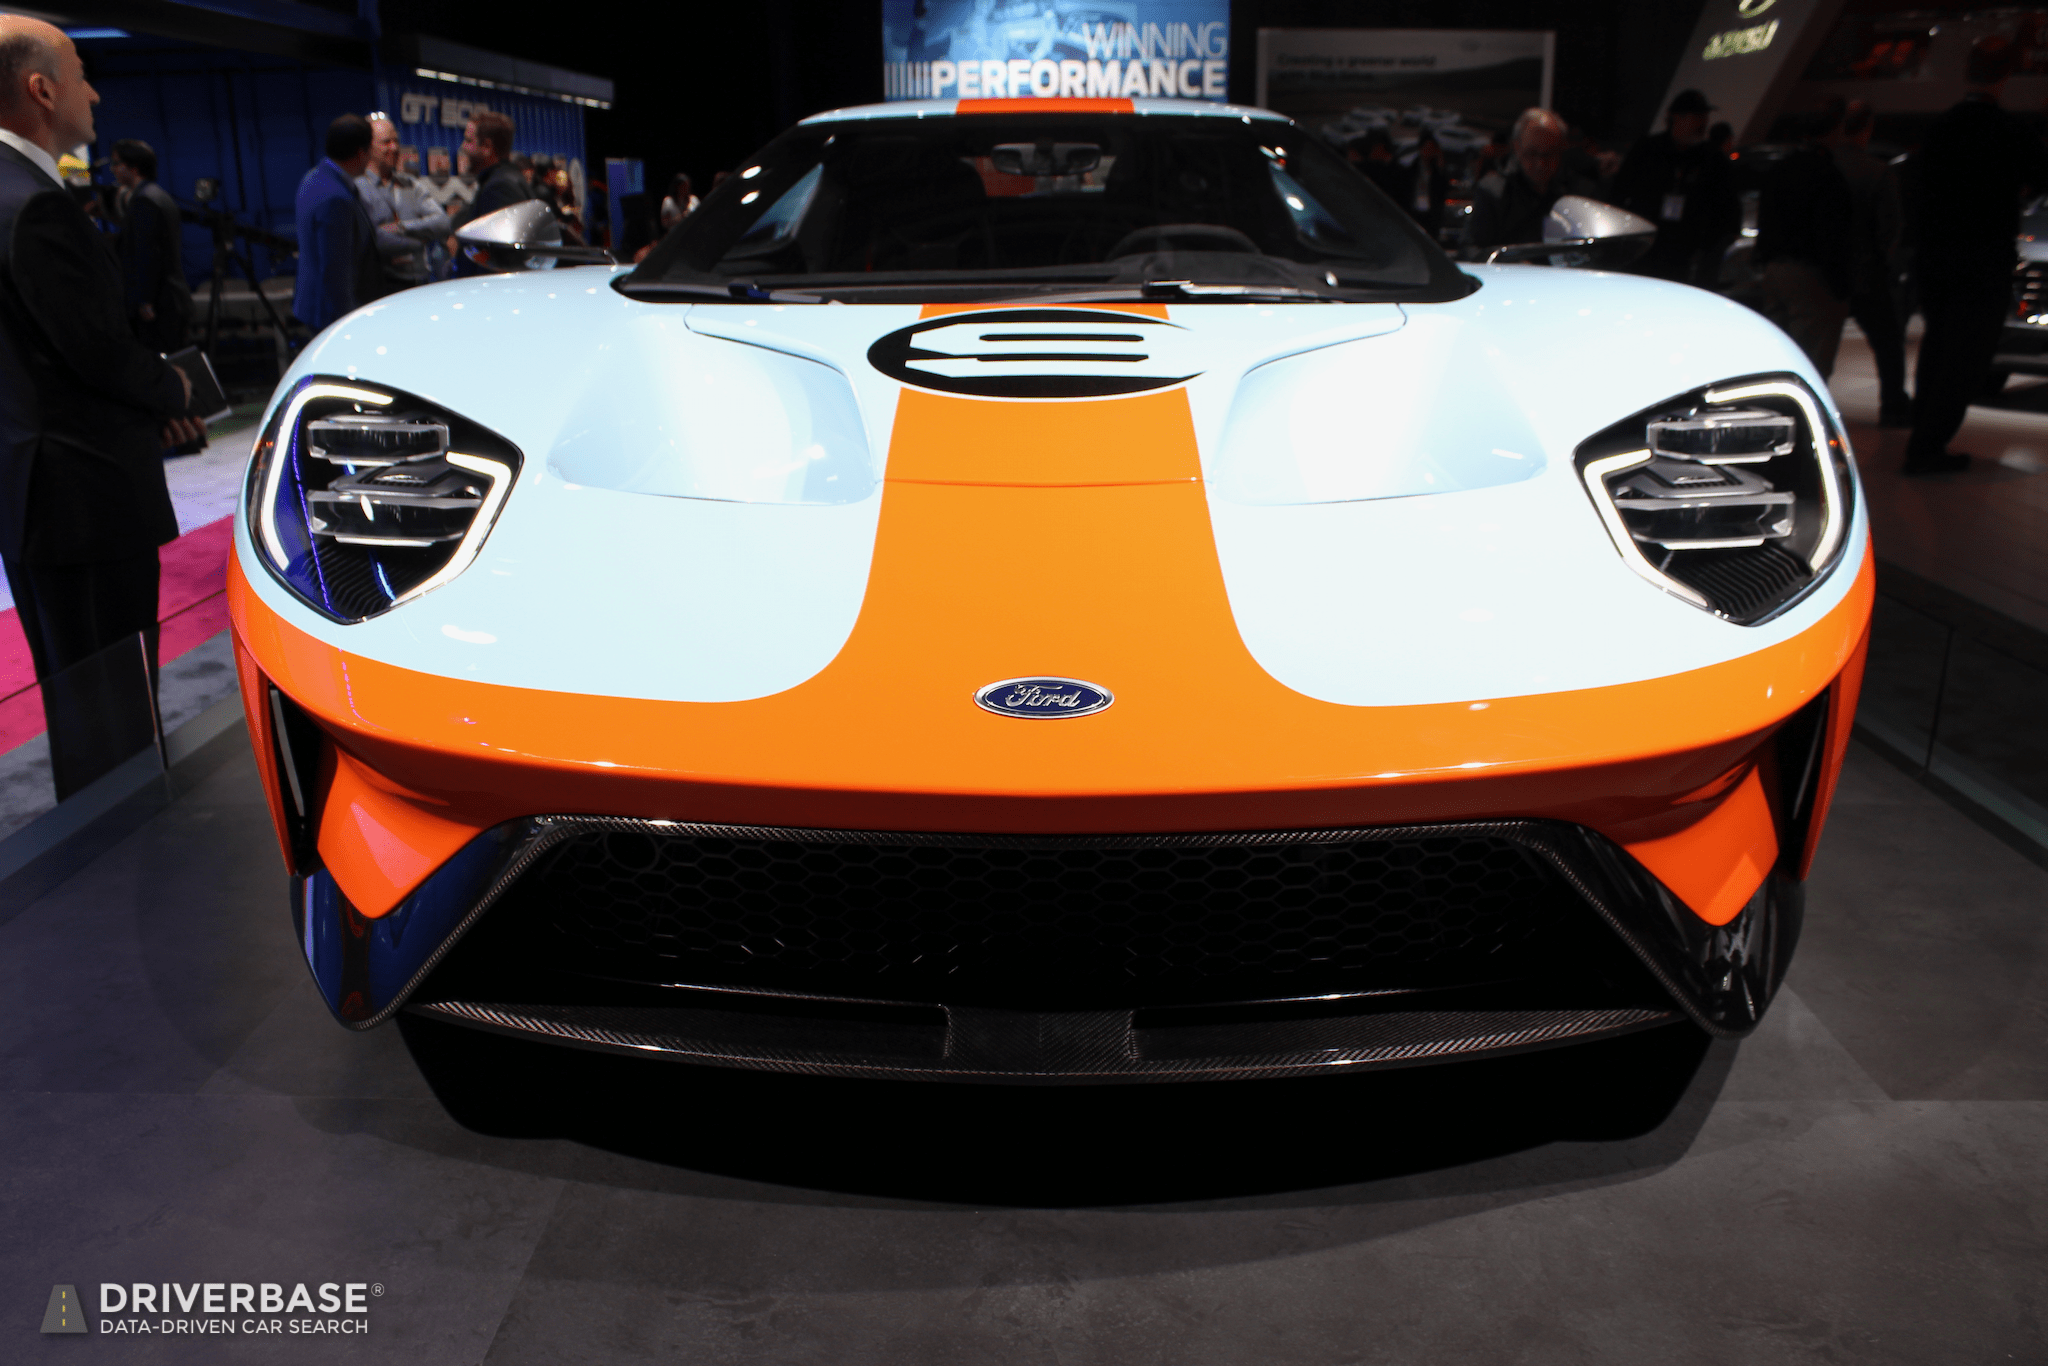 2020 Ford GT at the 2019 New York Auto Show – Driverbase